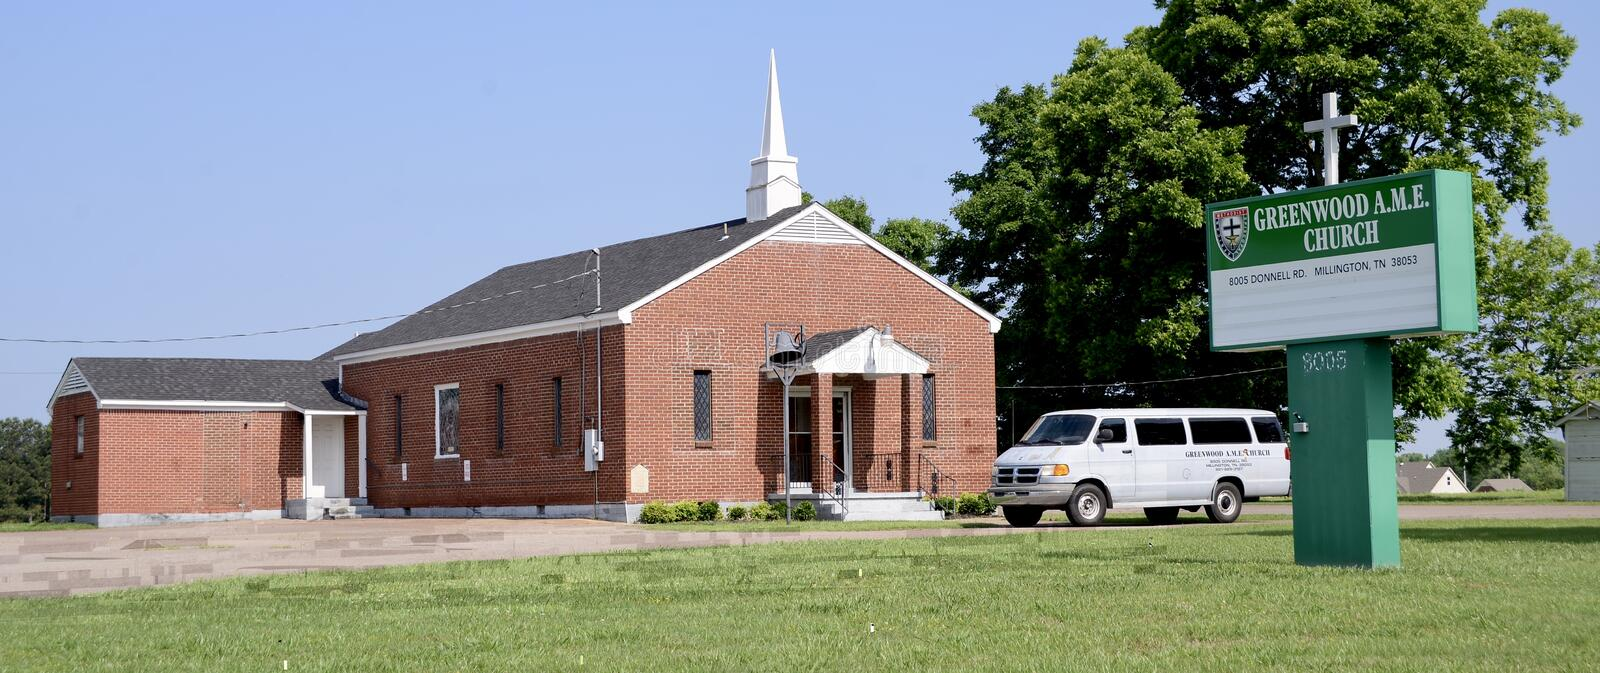 Église méthodiste africaine de Greenwood, Millington, TN images libres de droits